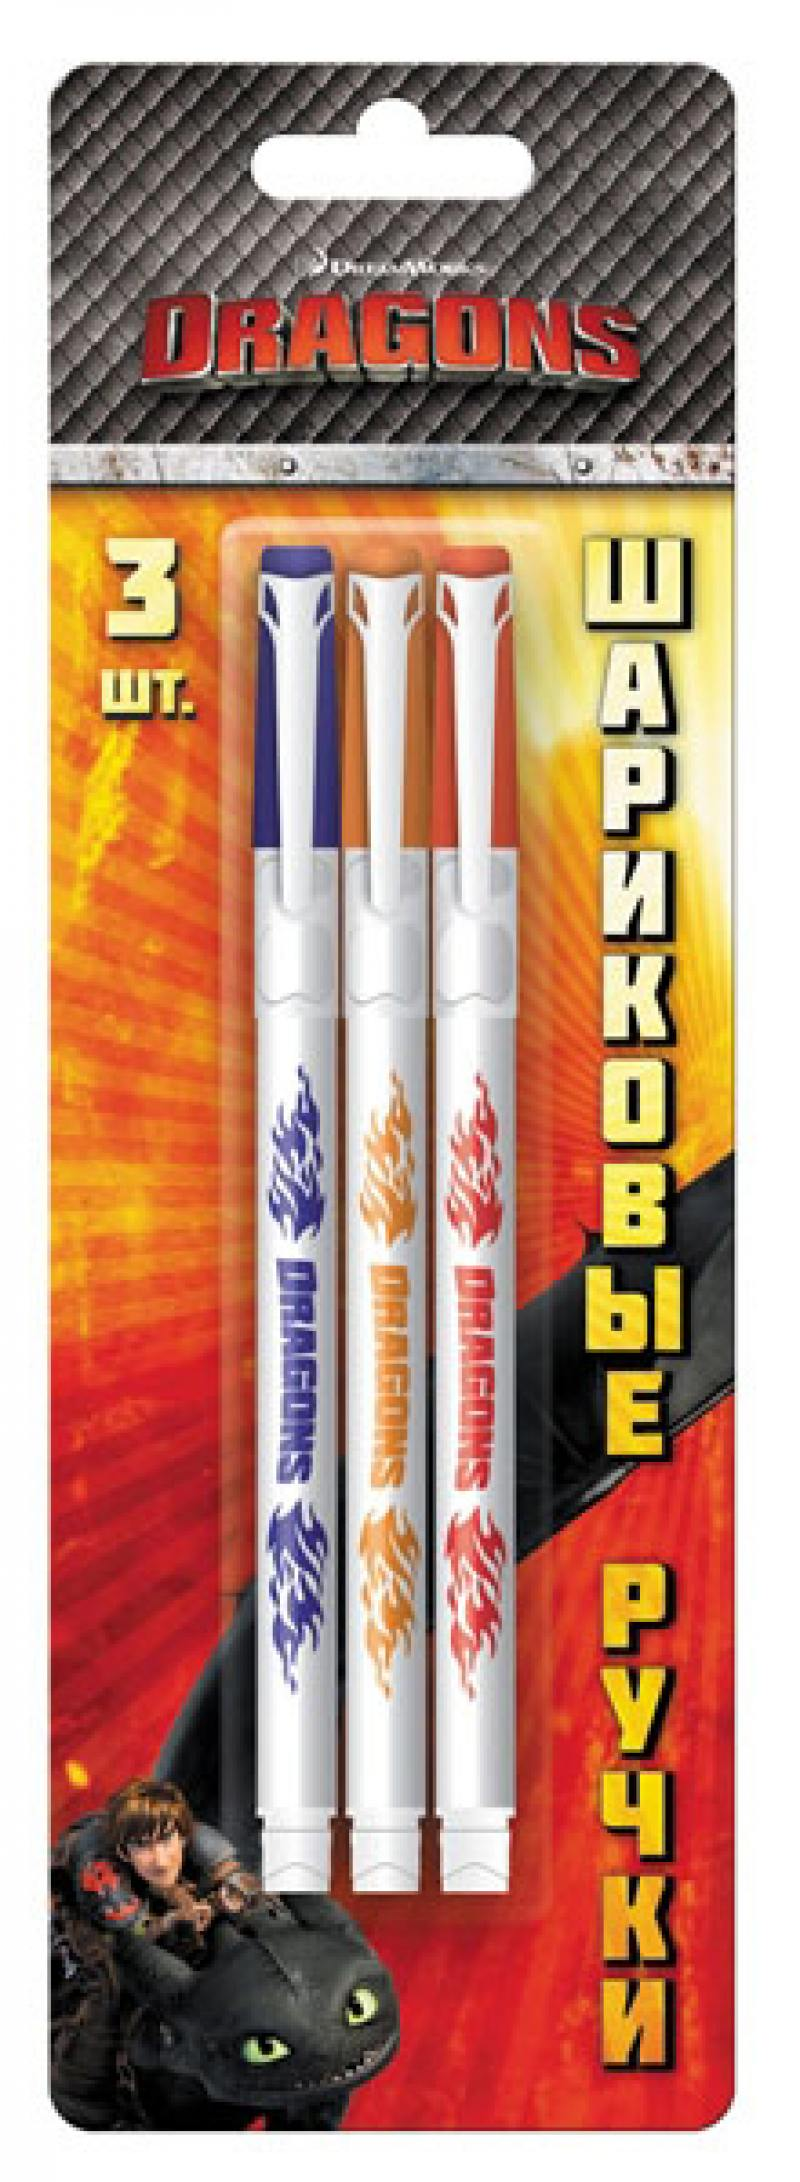 Набор шариковых ручек Action! Dragons 3 шт DR-ABP151/3 DR-ABP151/3 [sumger2] mean well original dr 100 15 15v 6 5a meanwell dr 100 15v 97 5w single output industrial din rail power supply